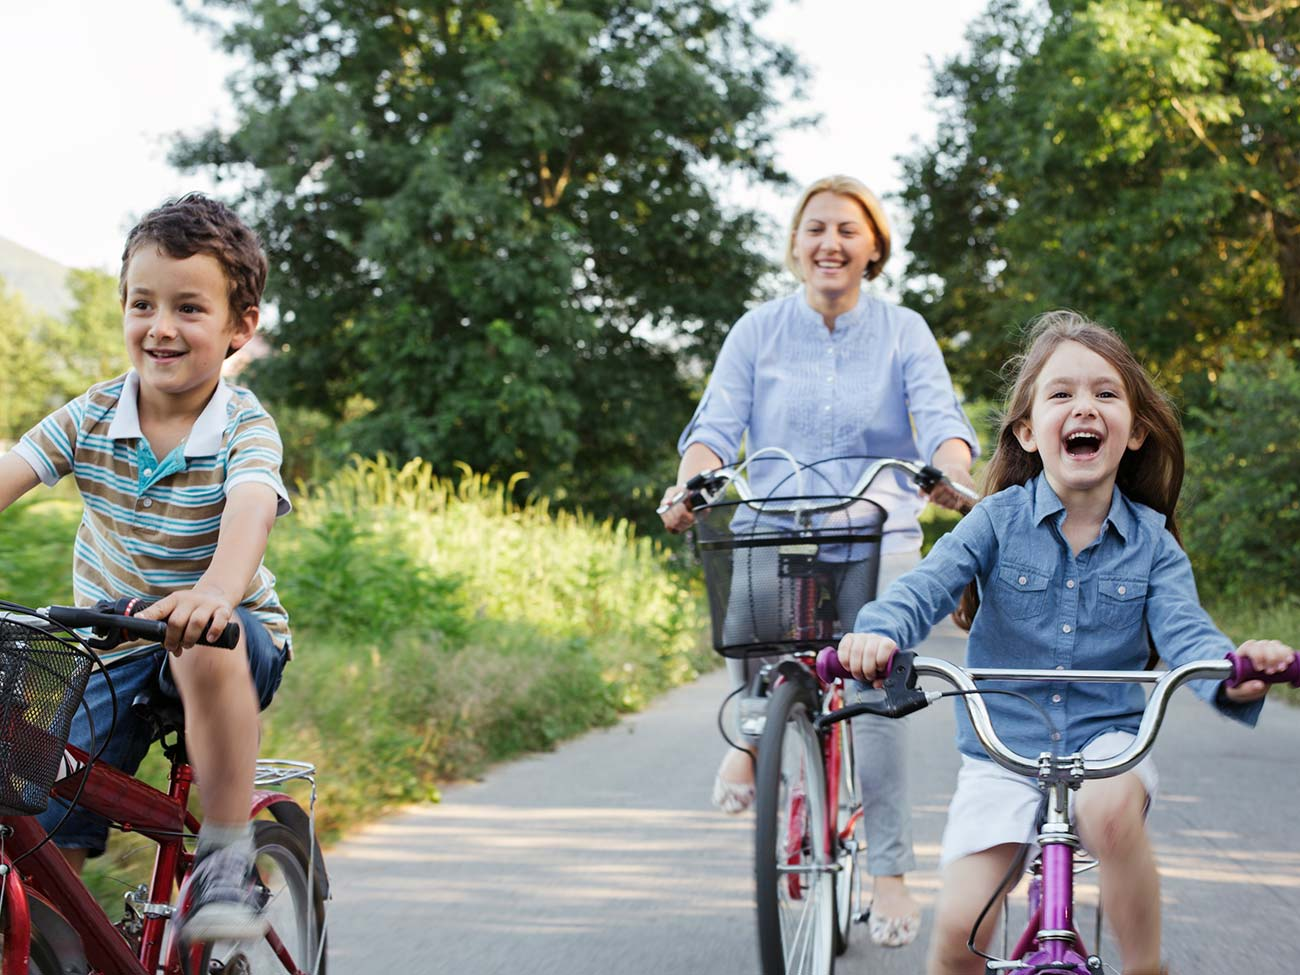 Mother and two children riding bikes and laughing